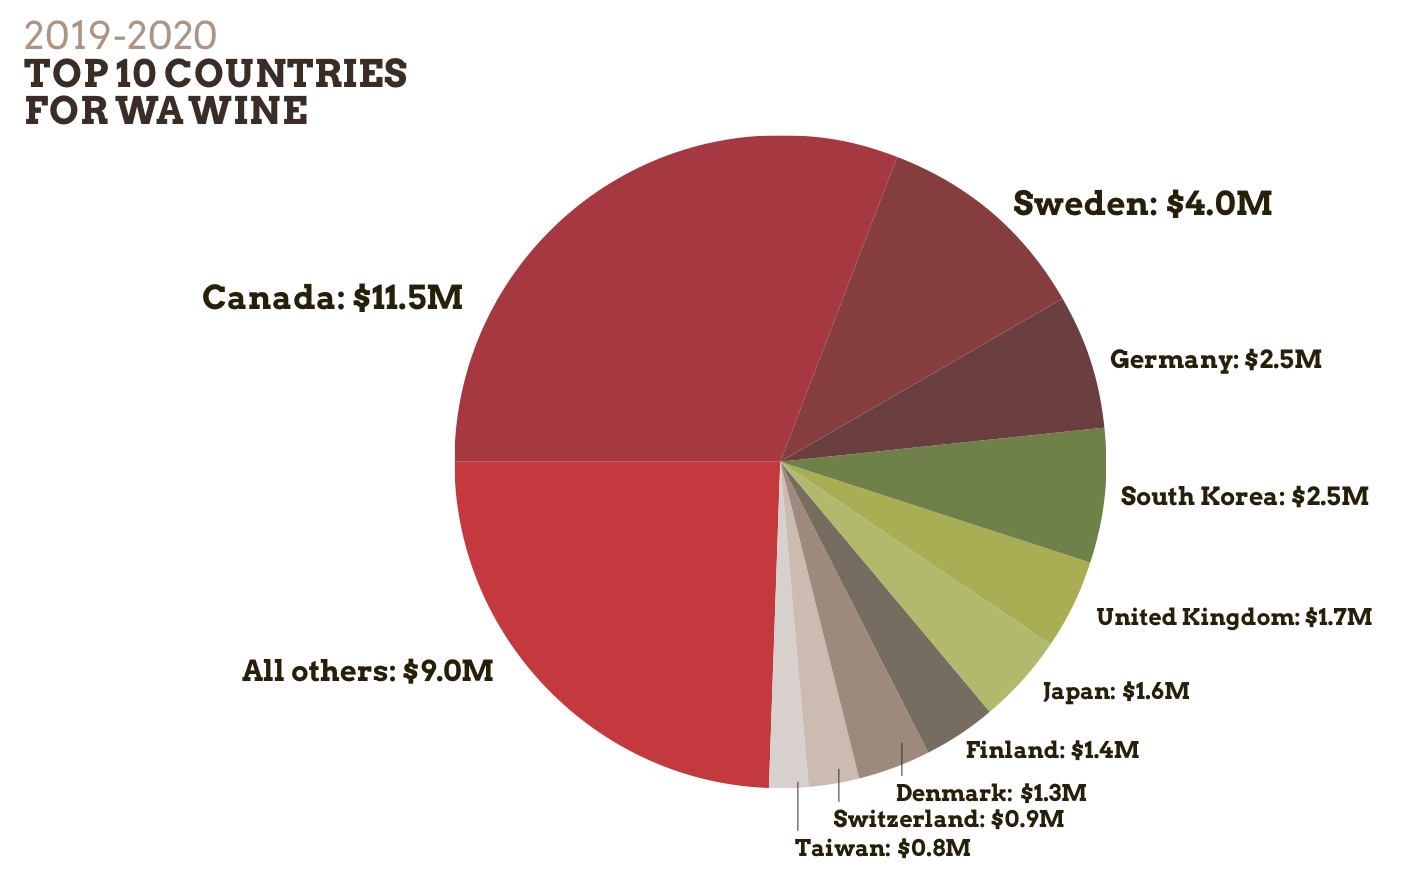 Pie graph showing the 2019-2020 Top 10 Countries for WA Wine